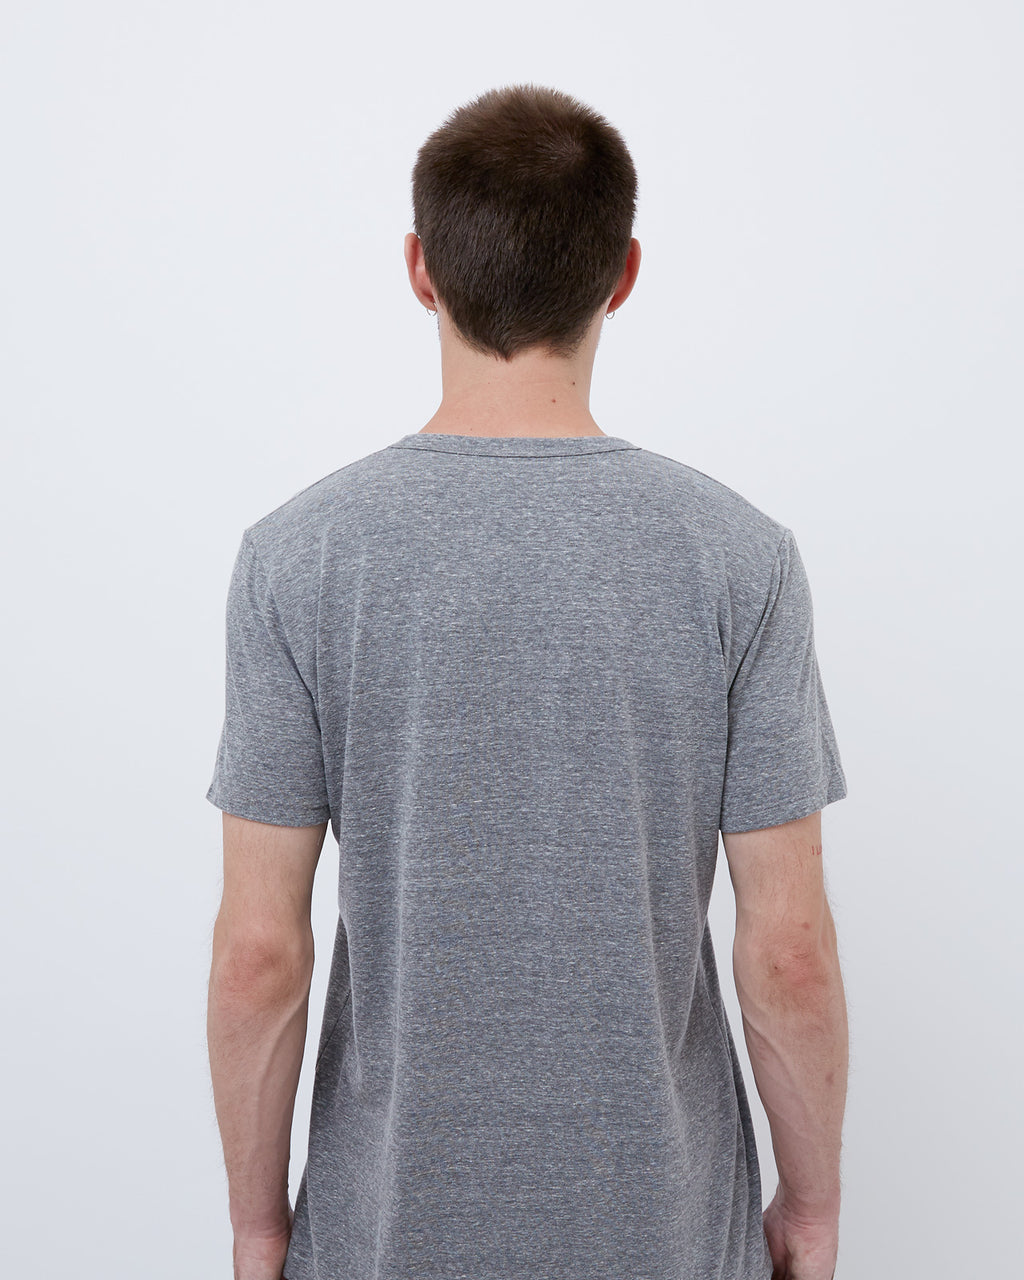 The Crew Neck Tee in Heather Grey